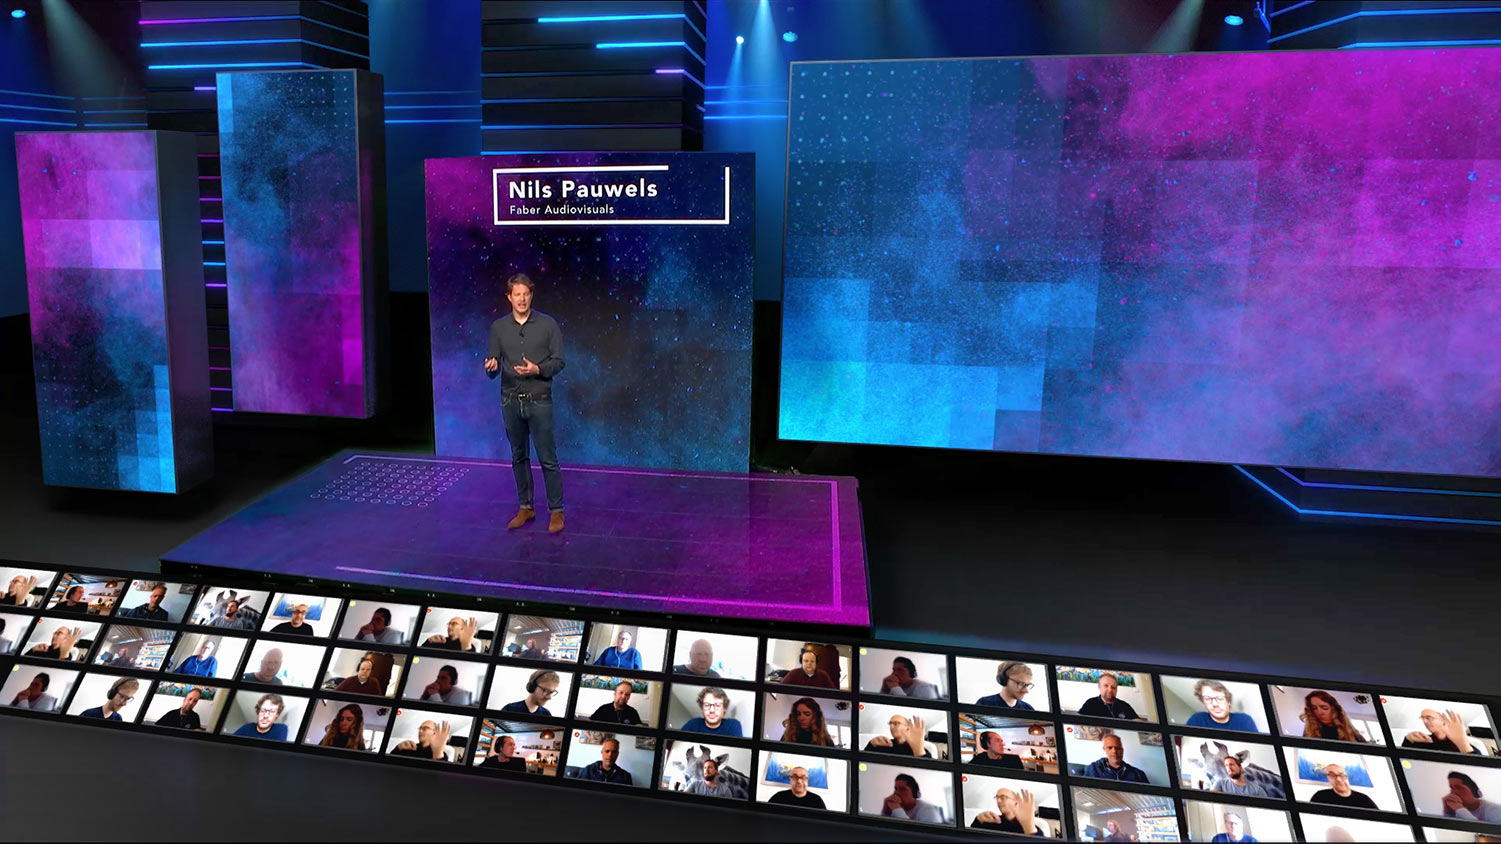 Virtual event studio with live audience